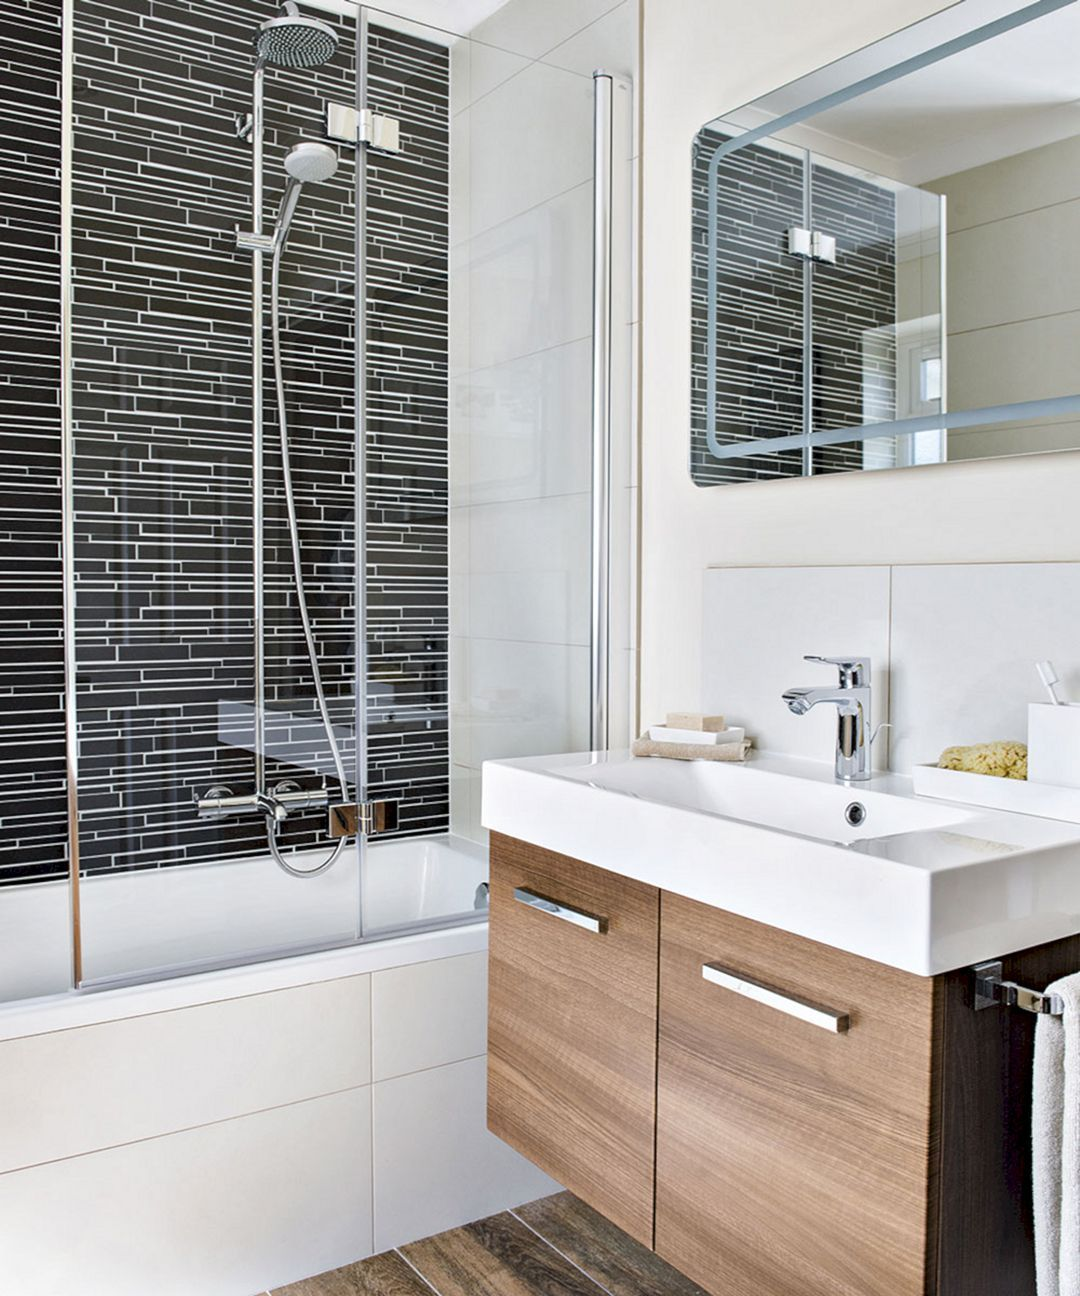 Awesome 20 Best And Beautiful Small Bathroom Shower Ideas Https Usdecorating Com 5443 20 Best And B Bathroom Interior Design Bathroom Design Modern Bathroom